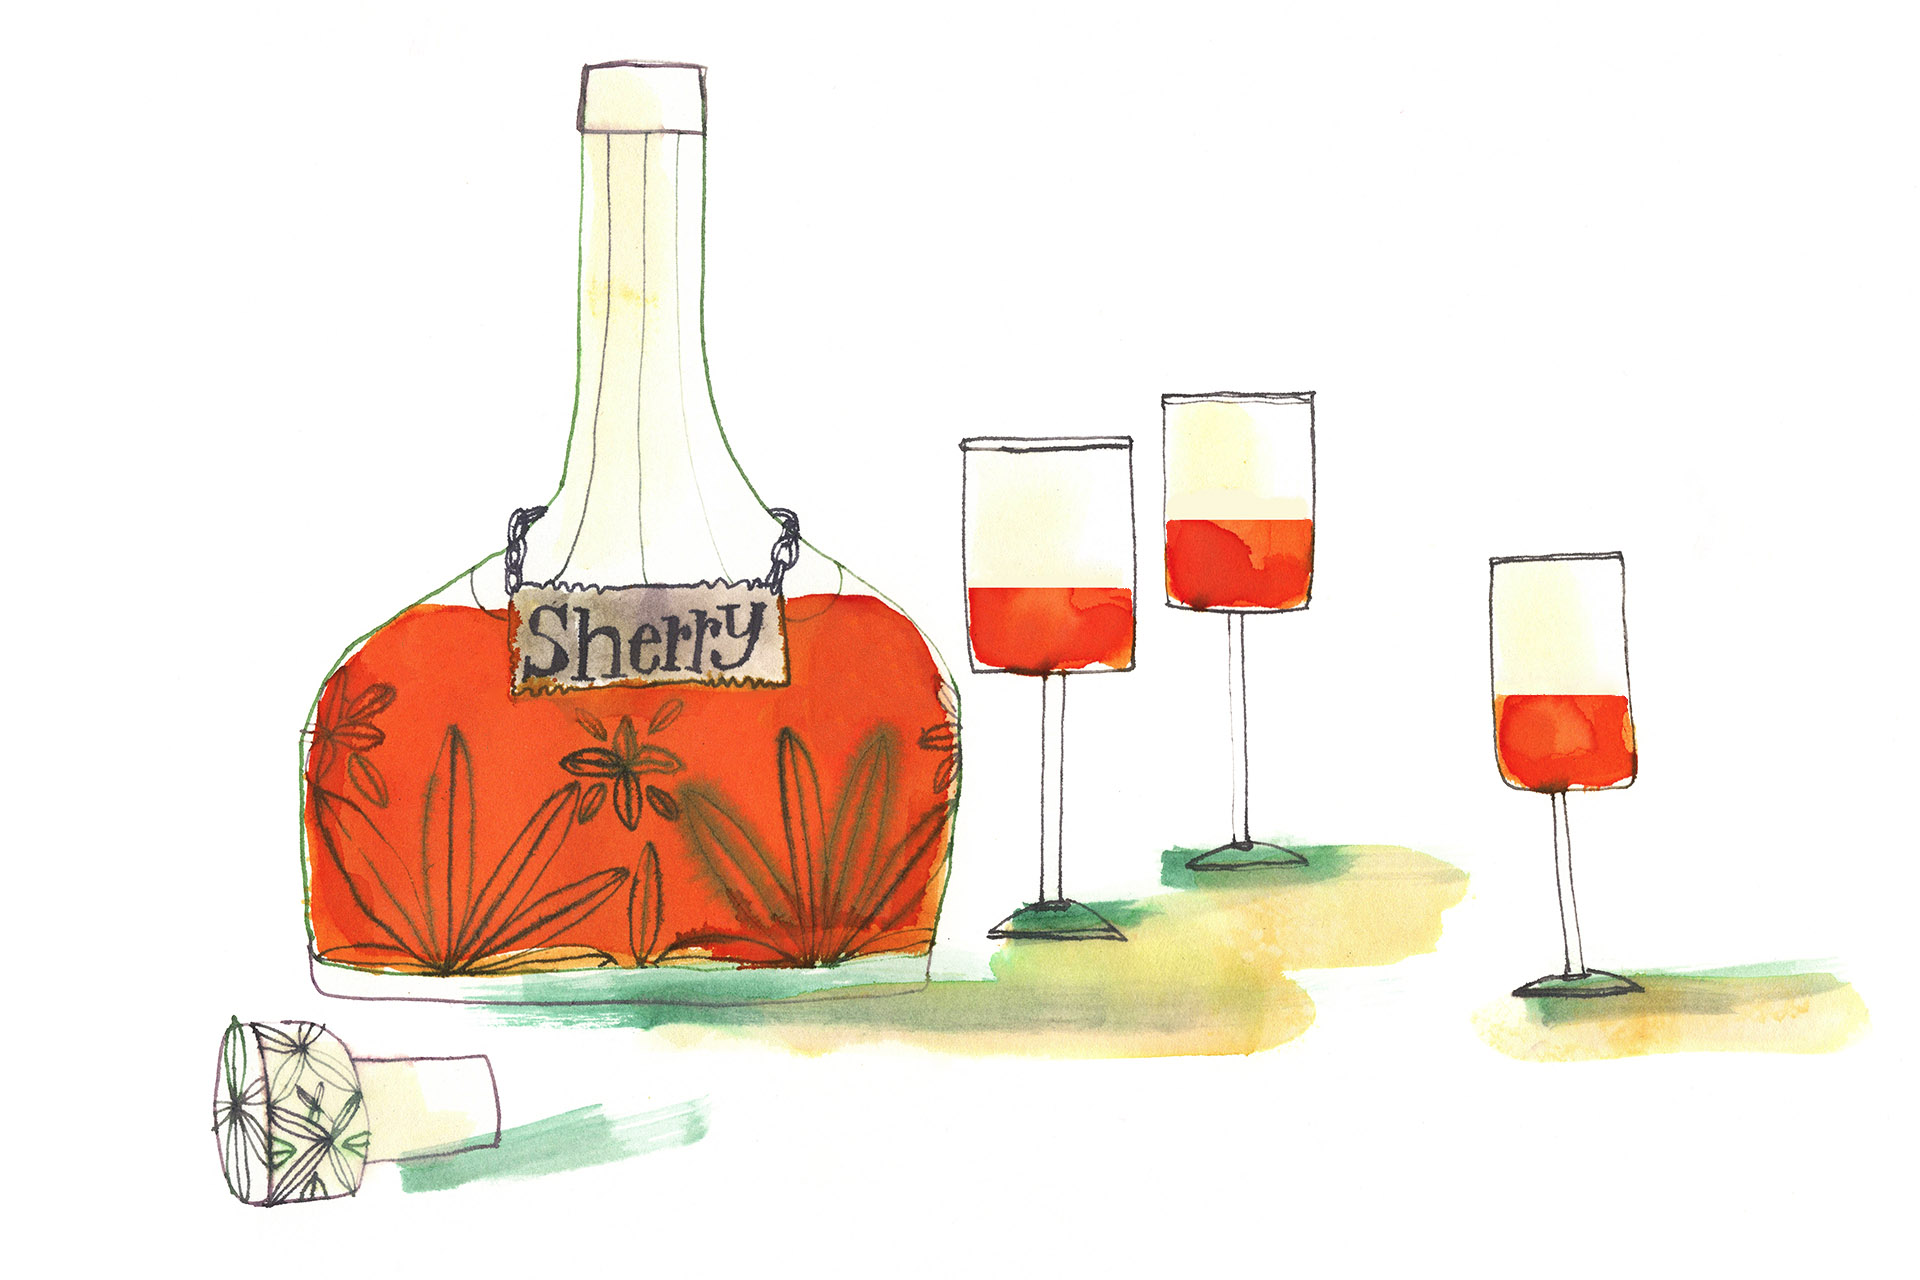 Illustration of a bottle of oxidized Sherry